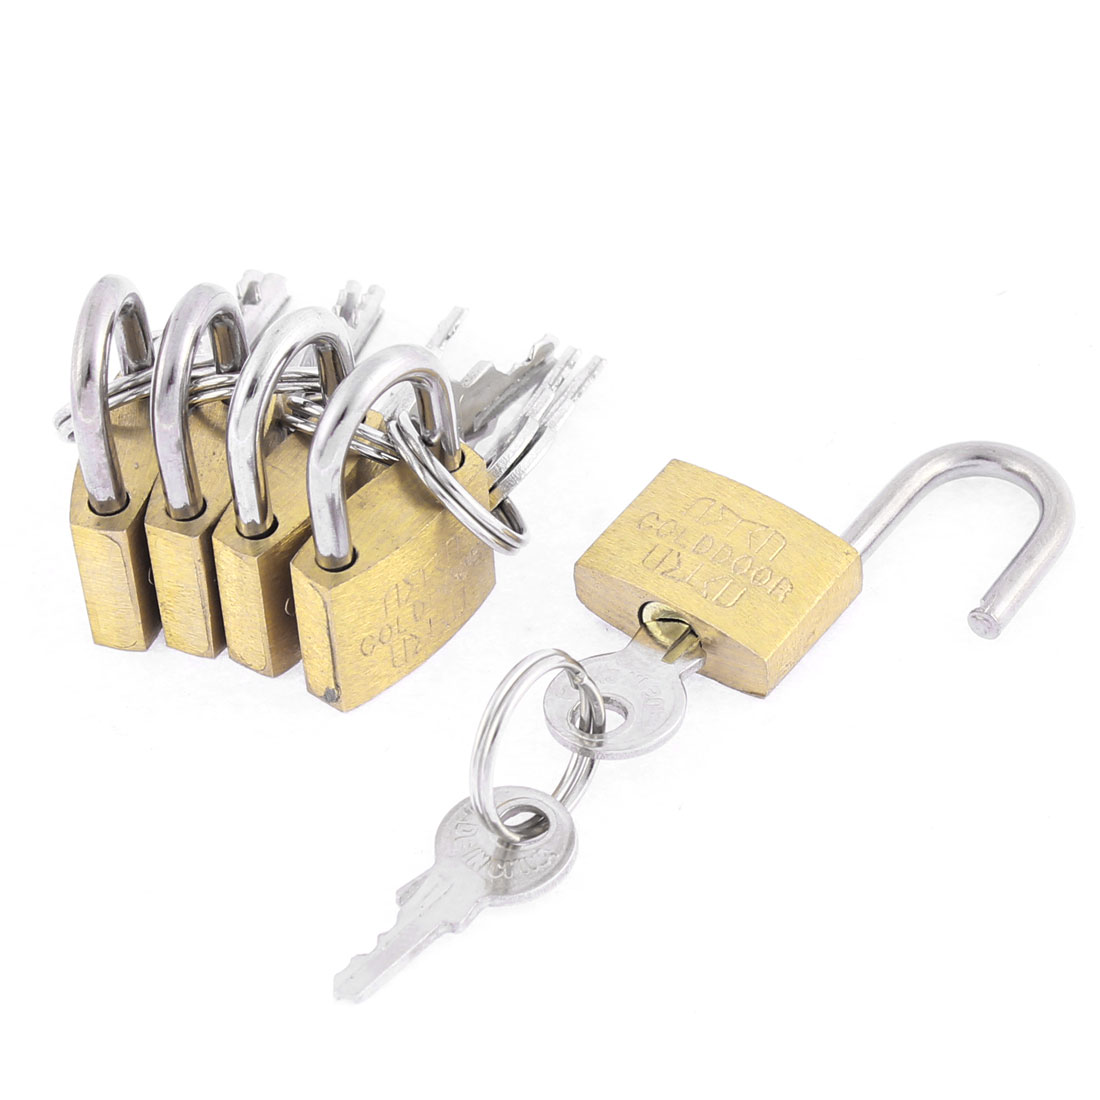 5 Pcs Metal Mini Tiny Drawer Cabinet Showcase Safety Padlock Locks Brass Tone w Keys